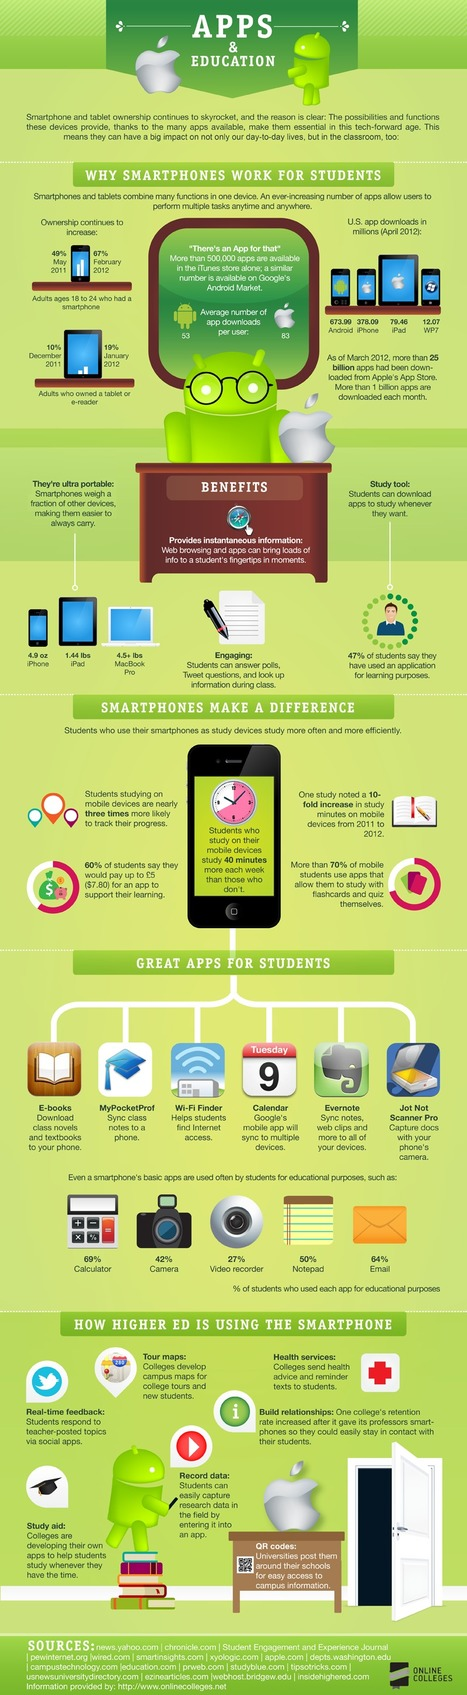 Conectando APPs y educación #infografia #infographic #software #education | IPAD, un nuevo concepto socio-educativo! | Scoop.it